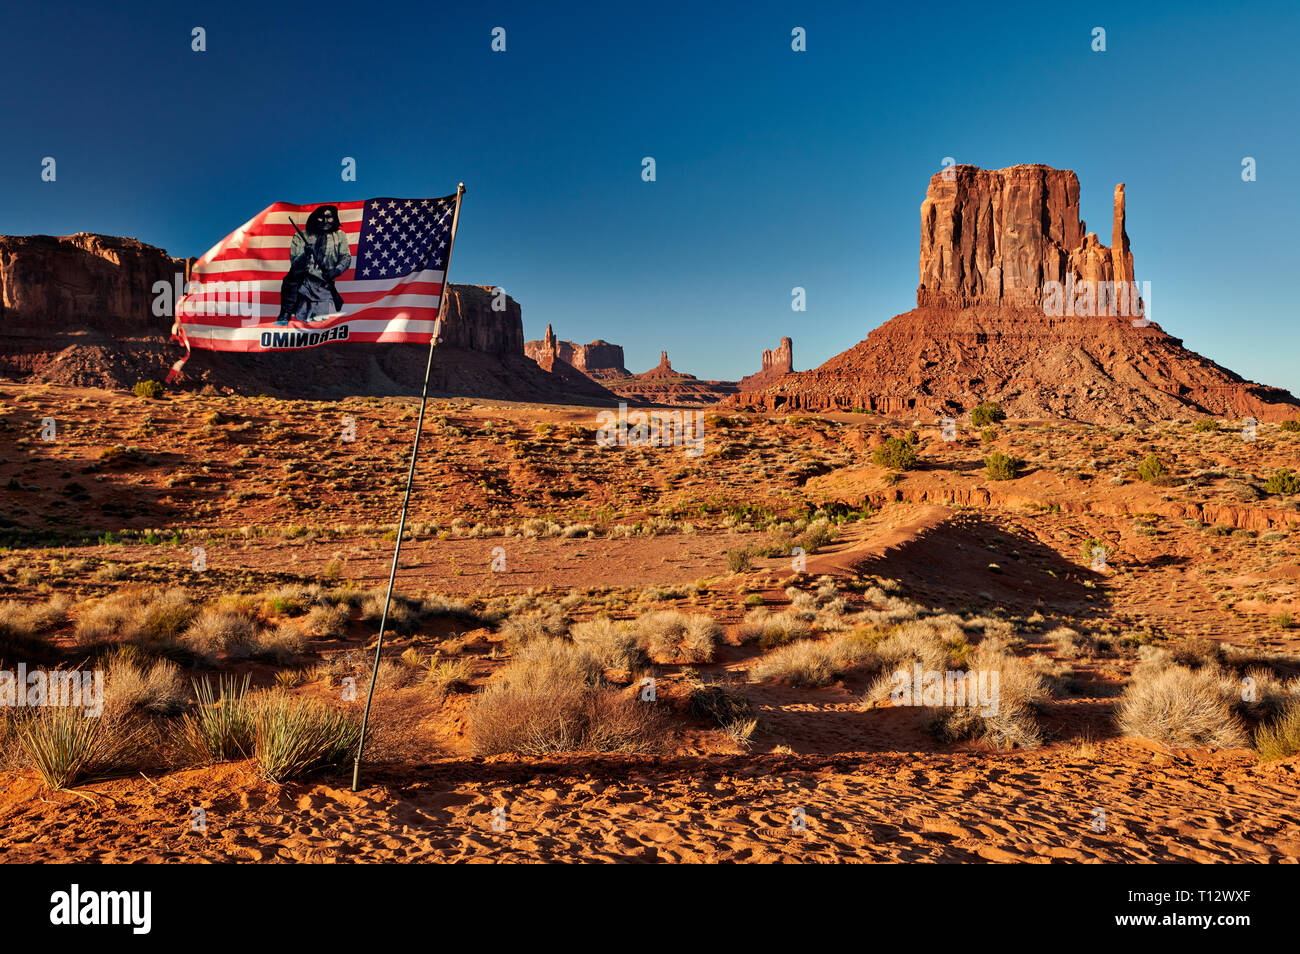 American flag withThe West Mitten Butte in Monument Valley, Arizona, USA, North America - Stock Image